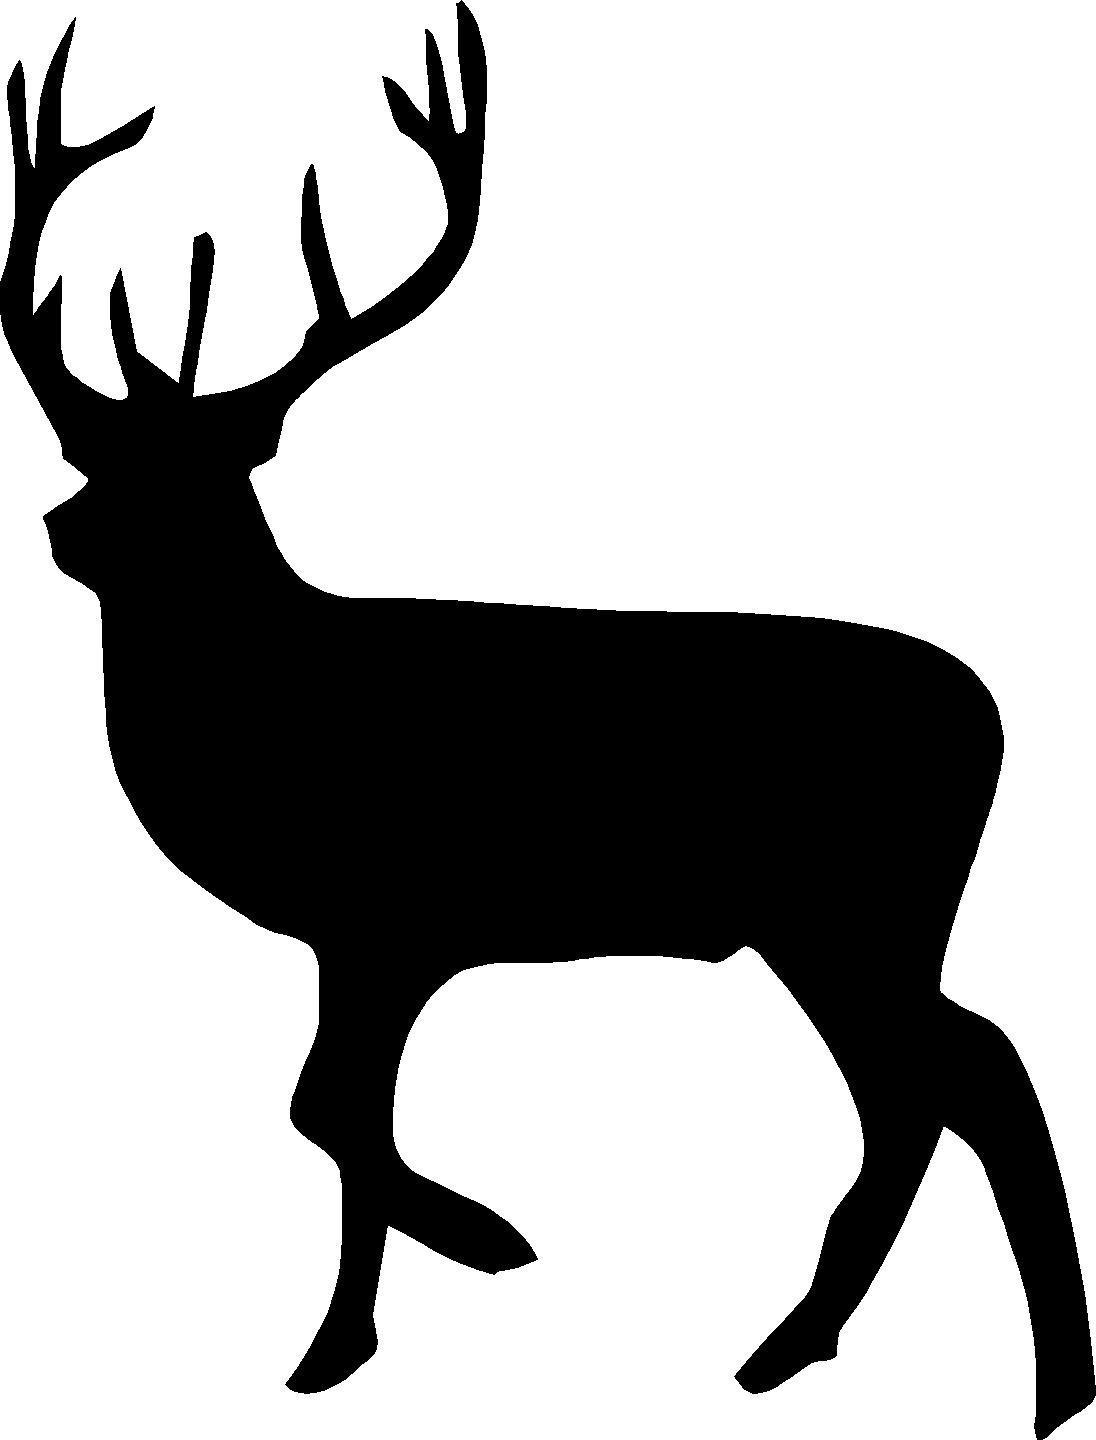 1096x1440 Best 15 Deer Silhouette Clip Art Whitetail Images